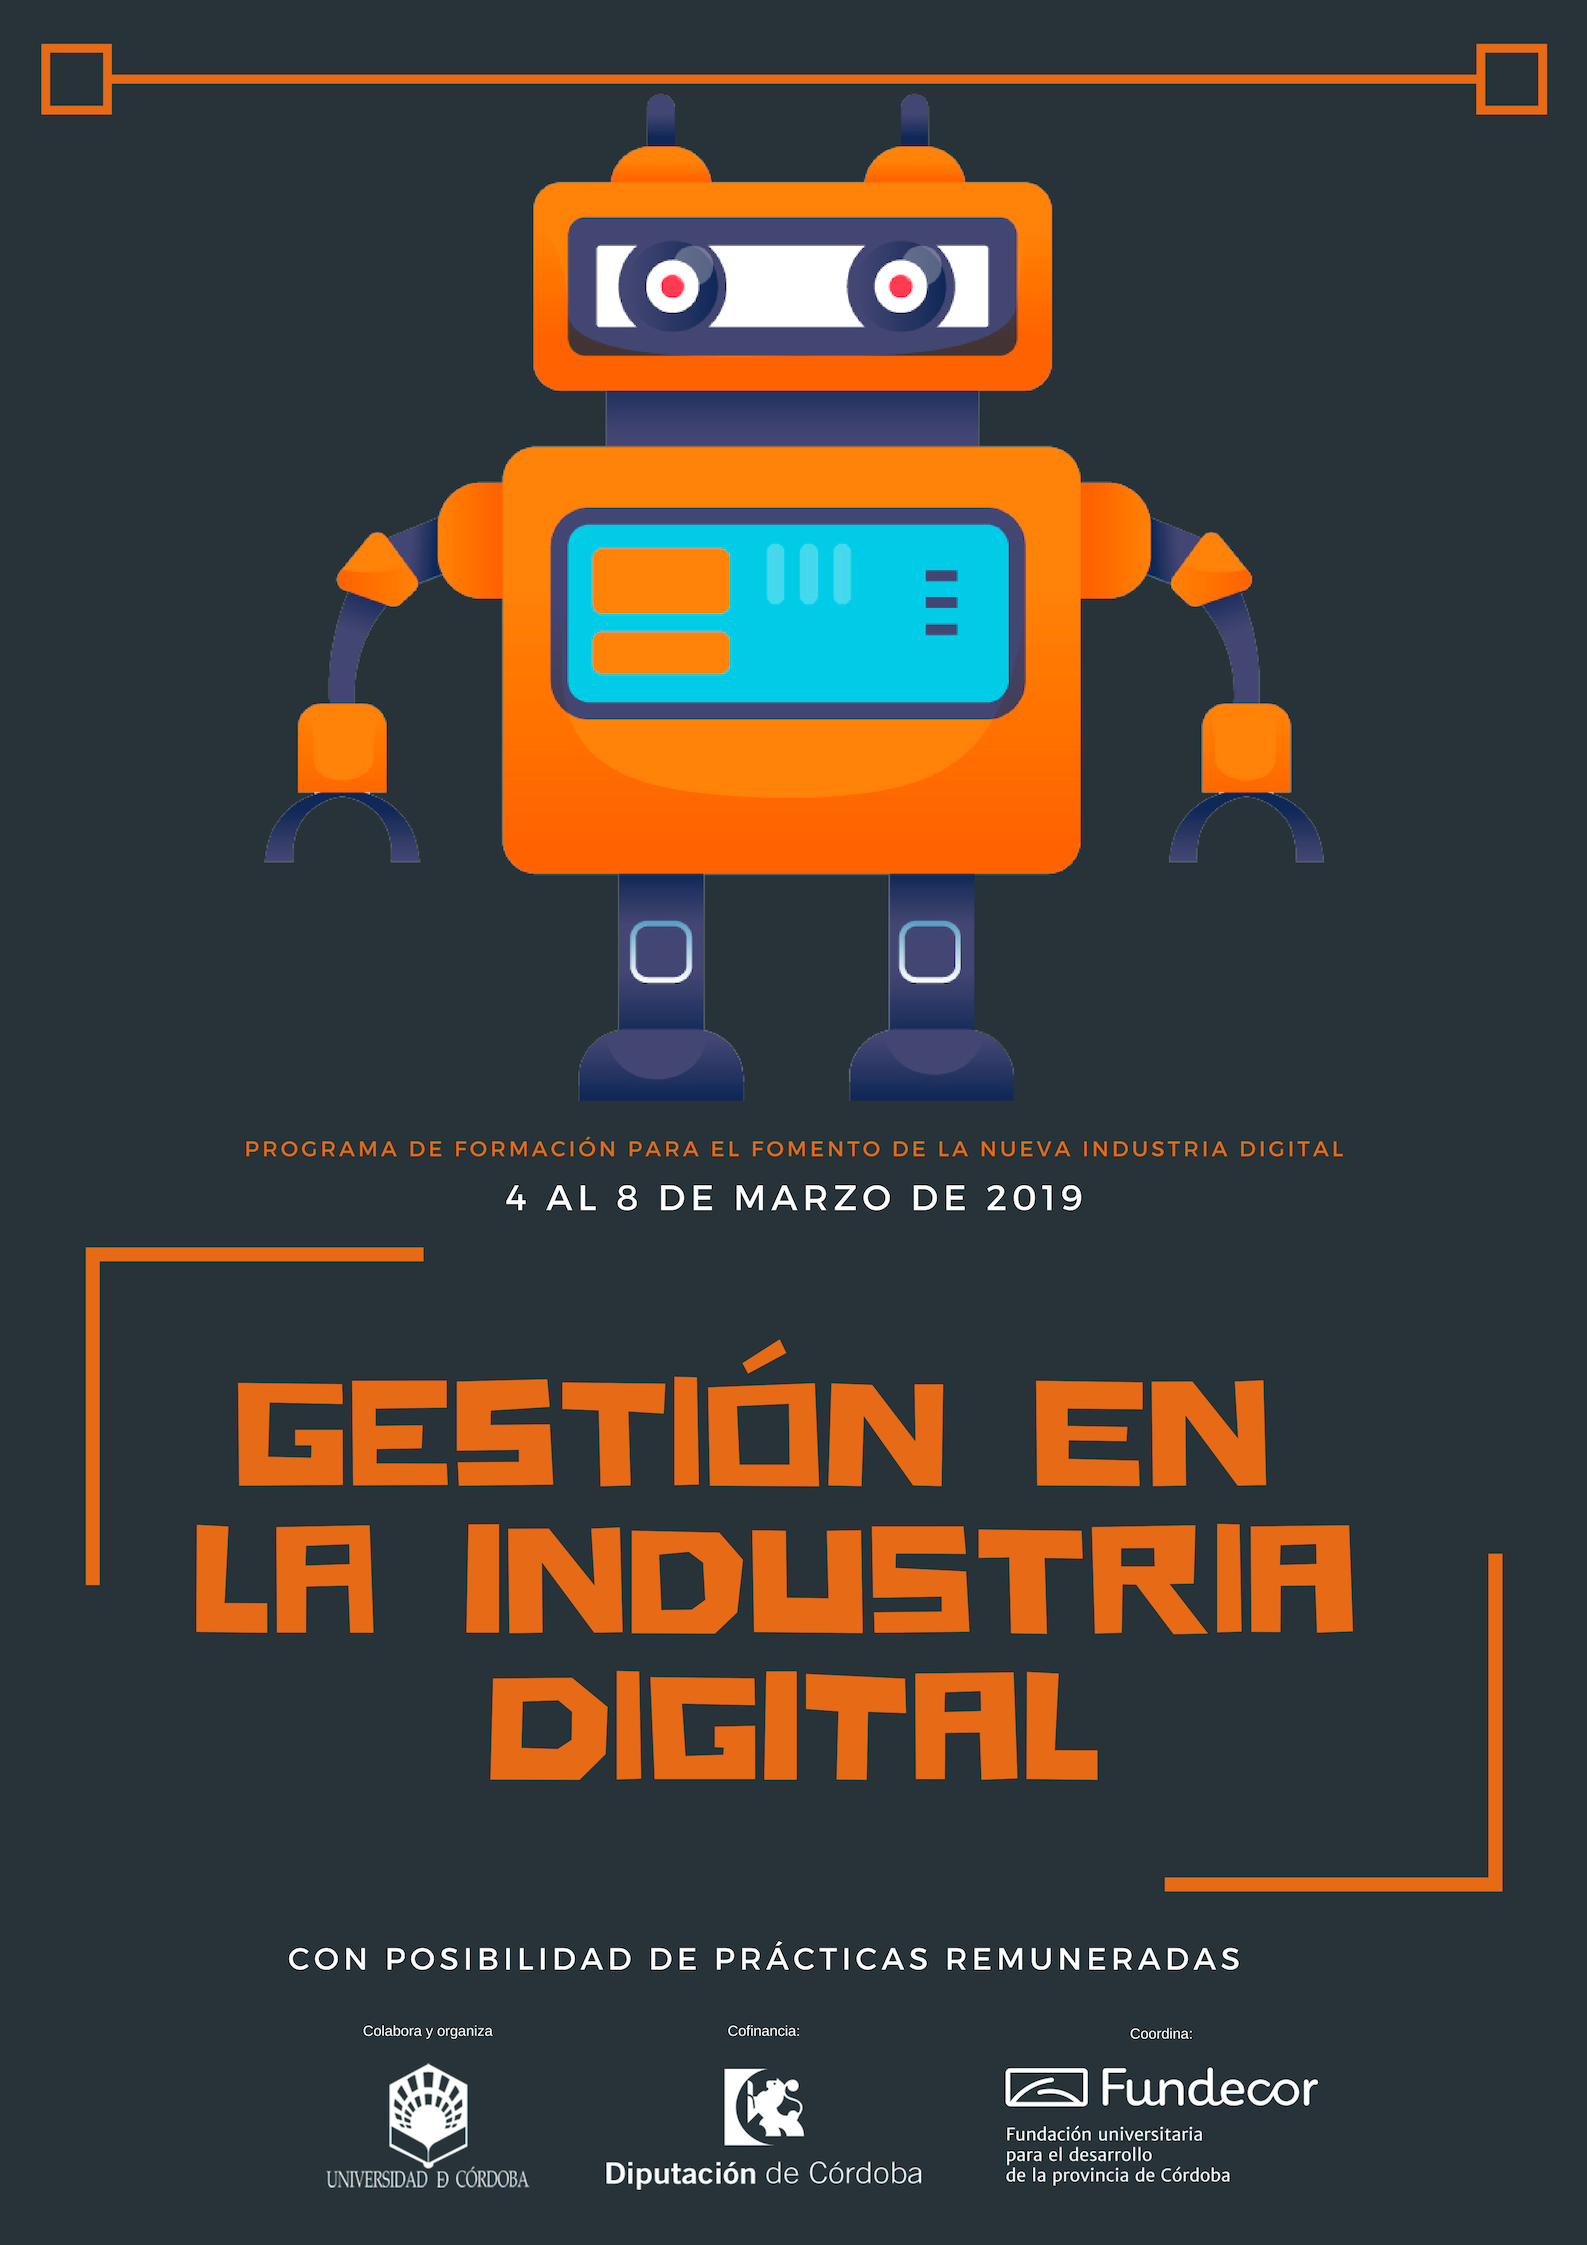 Gestión en la Industria Digital